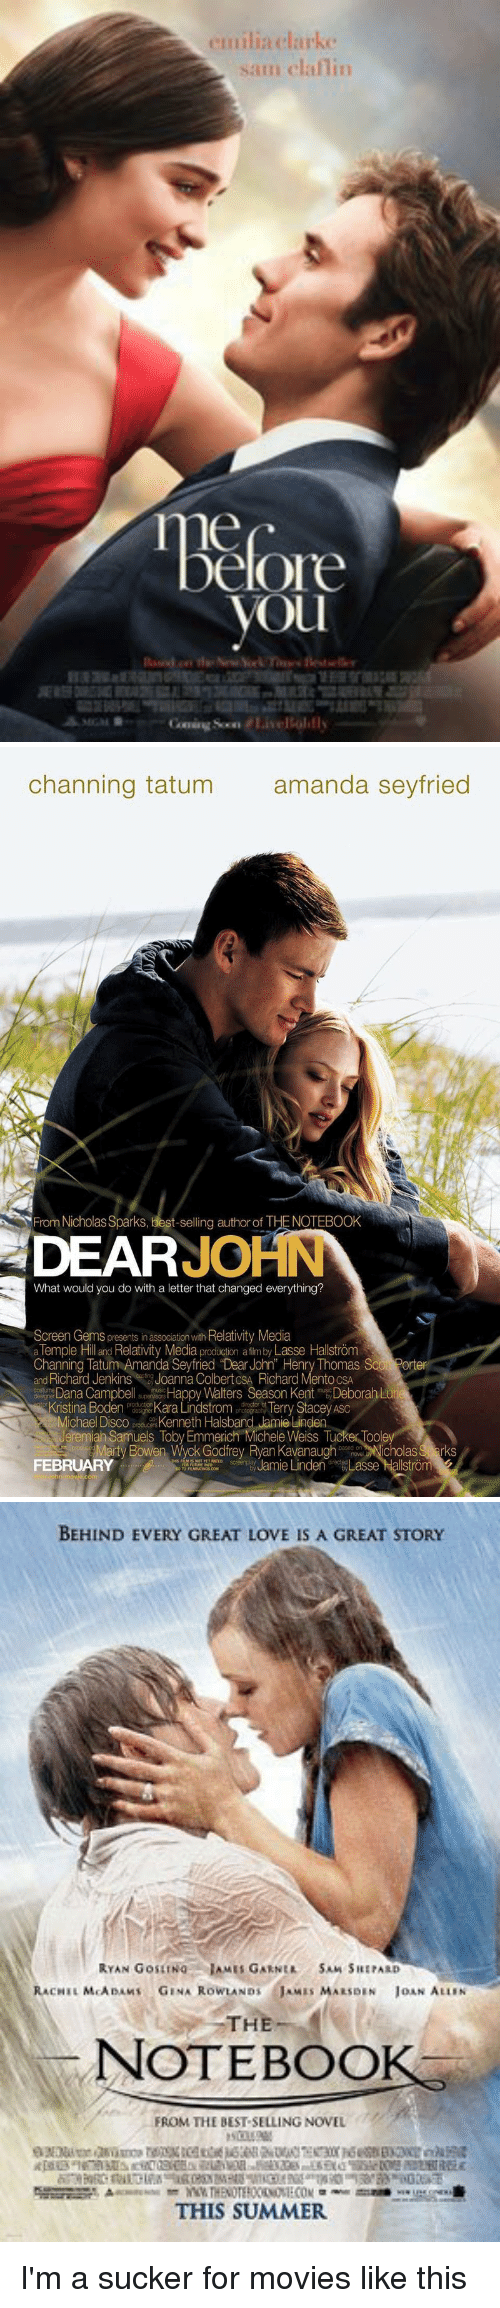 dear john book author